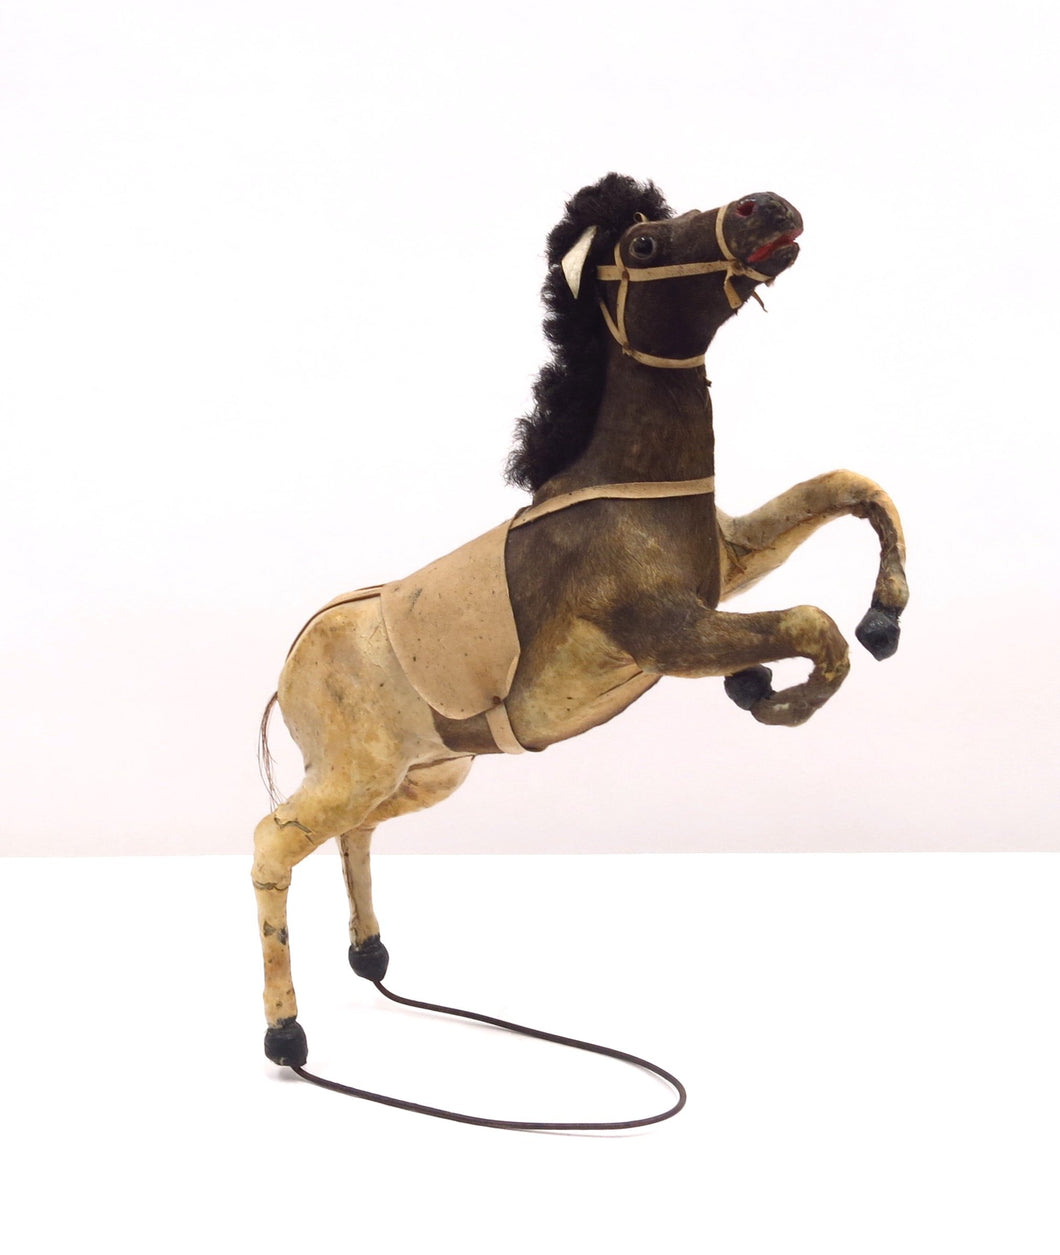 Charming early 20th century toy horse sculpture made of real horse hair